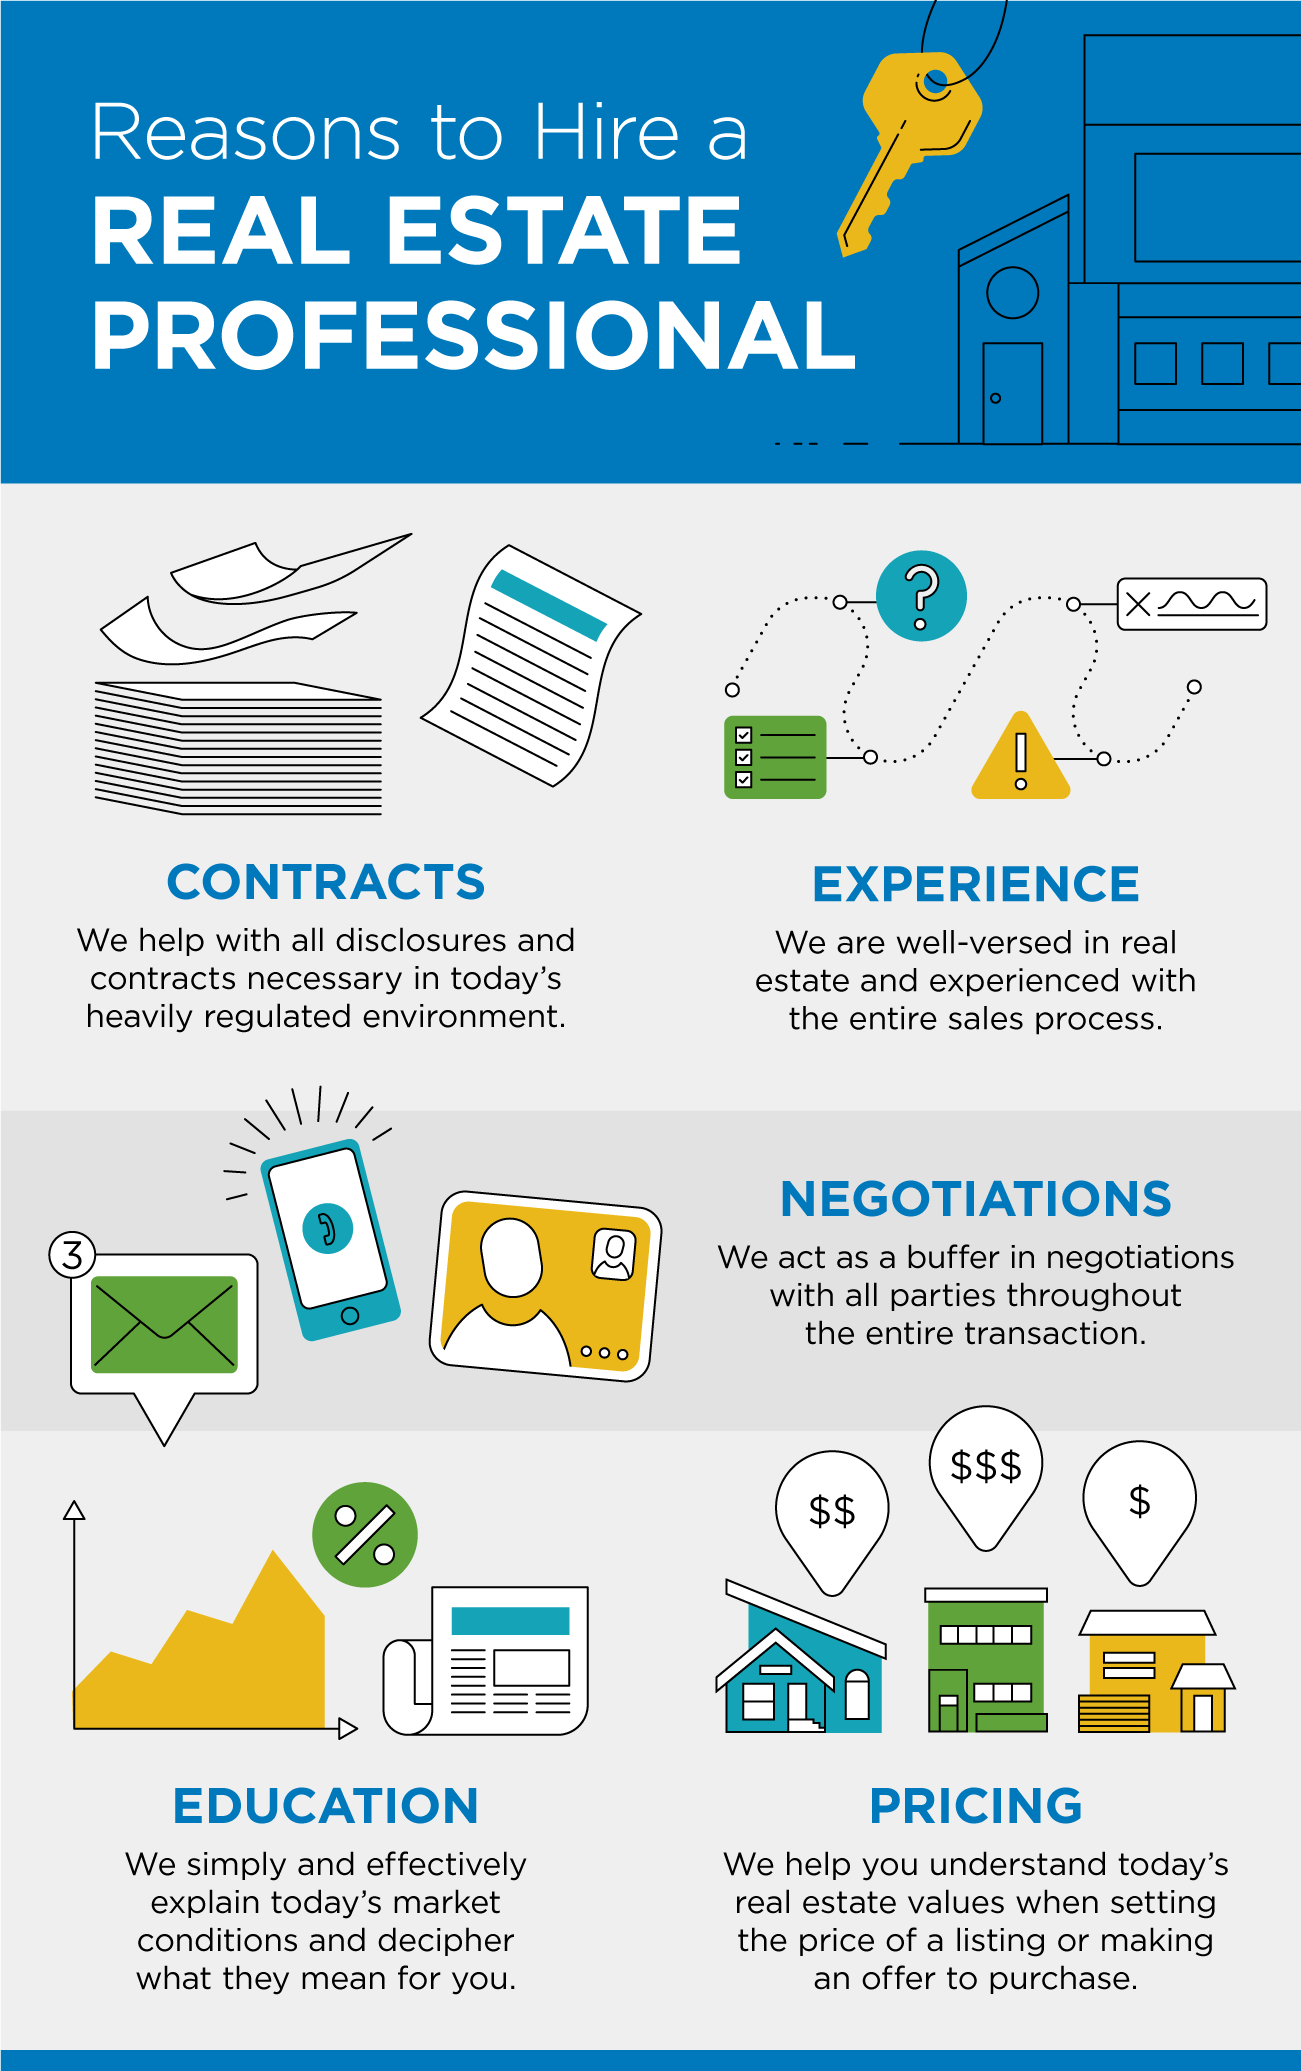 Reasons to Hire a Real Estate Professional [INFOGRAPHIC] | Tips from Kaye Swain Roseville REALTOR